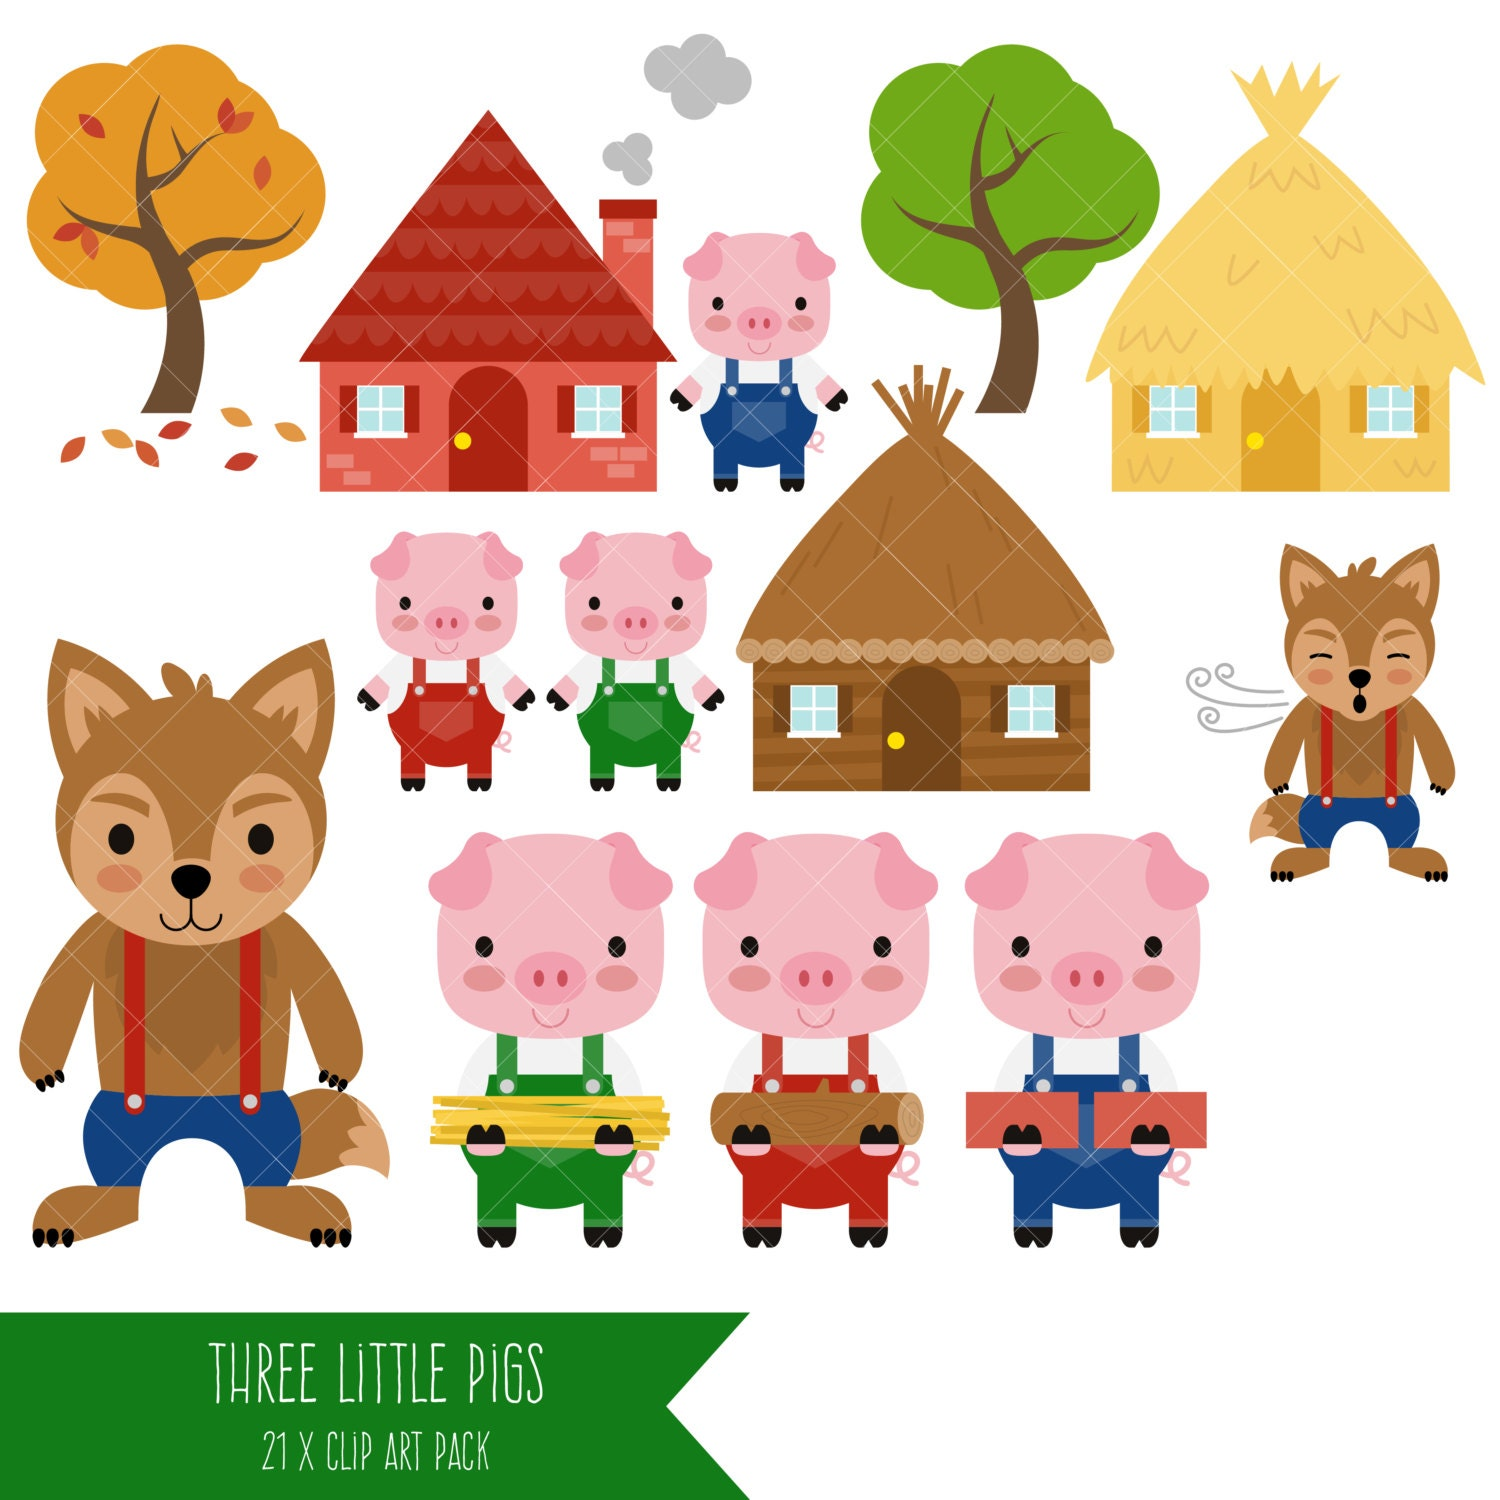 the gallery for  gt  three little pigs clipart 3 little pigs houses clipart 3 little pigs clipart free